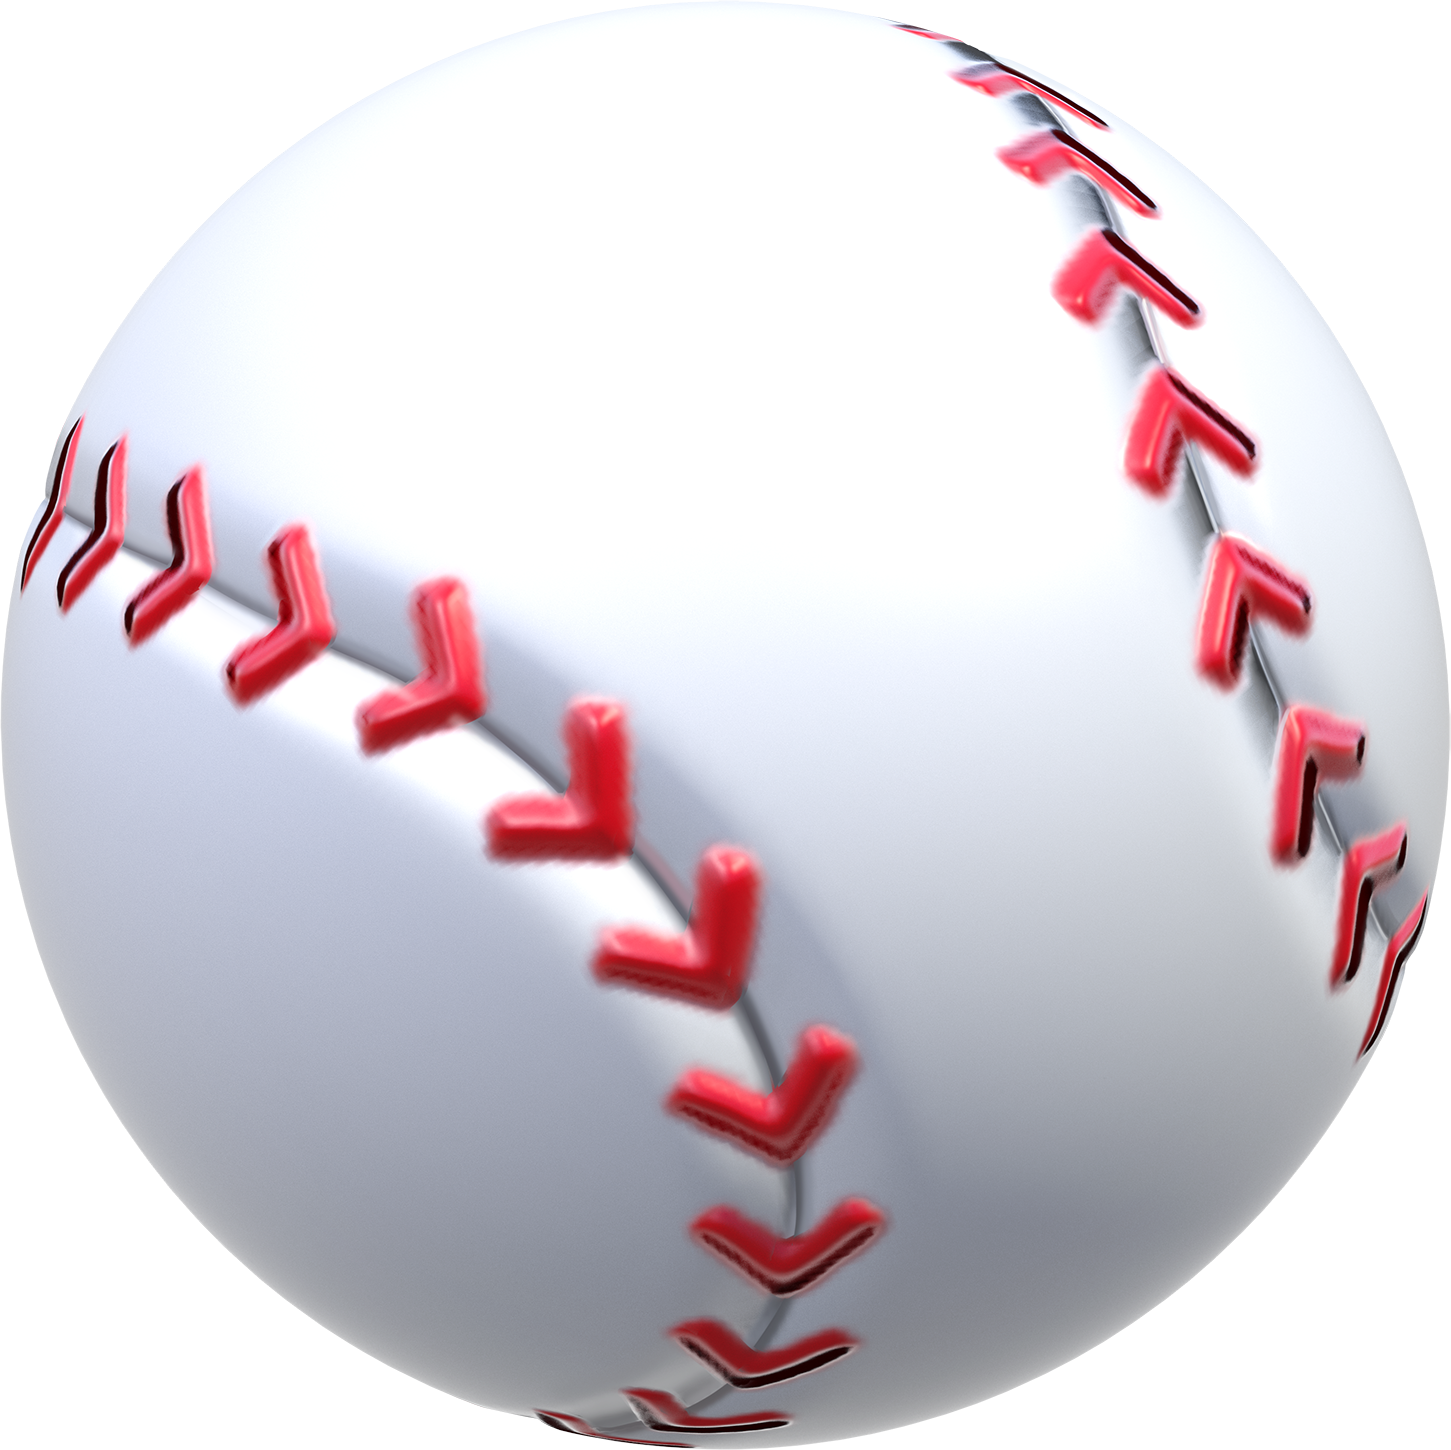 Baseball round clipart jpg freeuse stock Baseball PNG Transparent Images | PNG All jpg freeuse stock